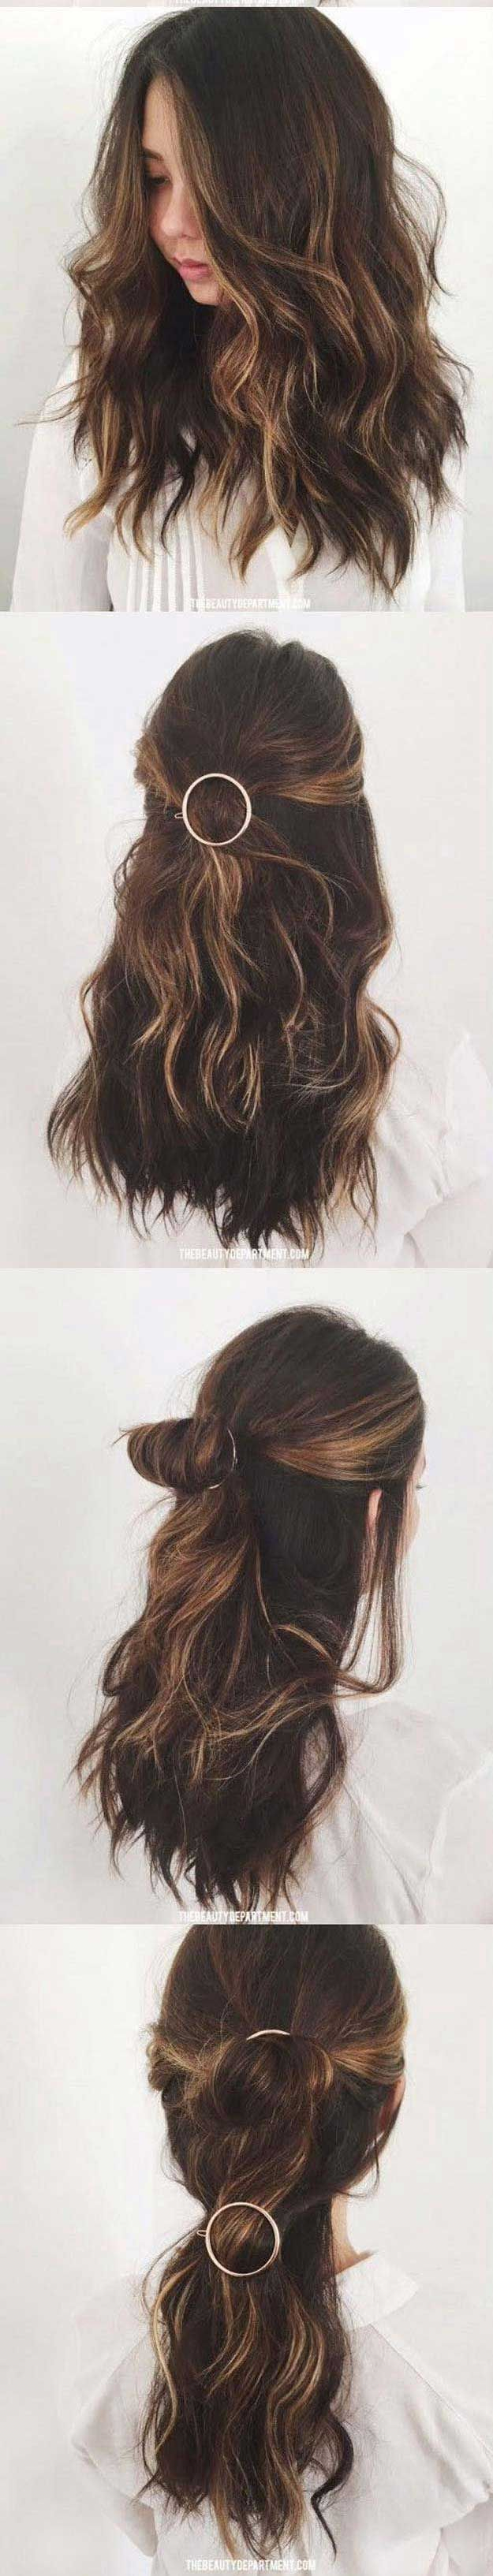 345 best Hair and Beauty images on Pinterest